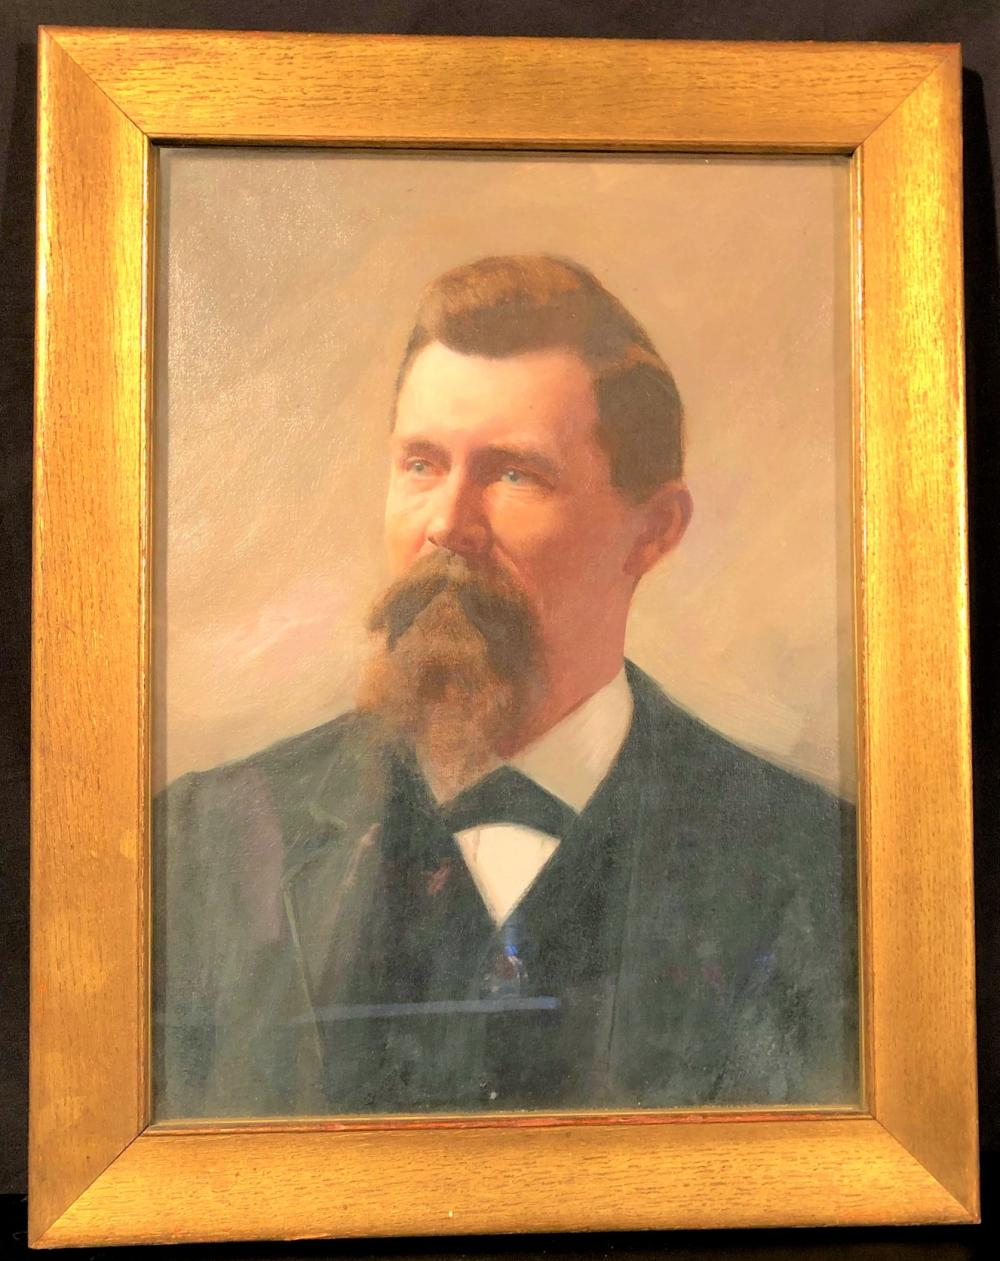 GEORGE M. REEVS (1864-1930) OIL PORTRAIT OF GENTLEMAN FRAMED AND UNDER GLASS MEASURING 22 IN x 17 IN